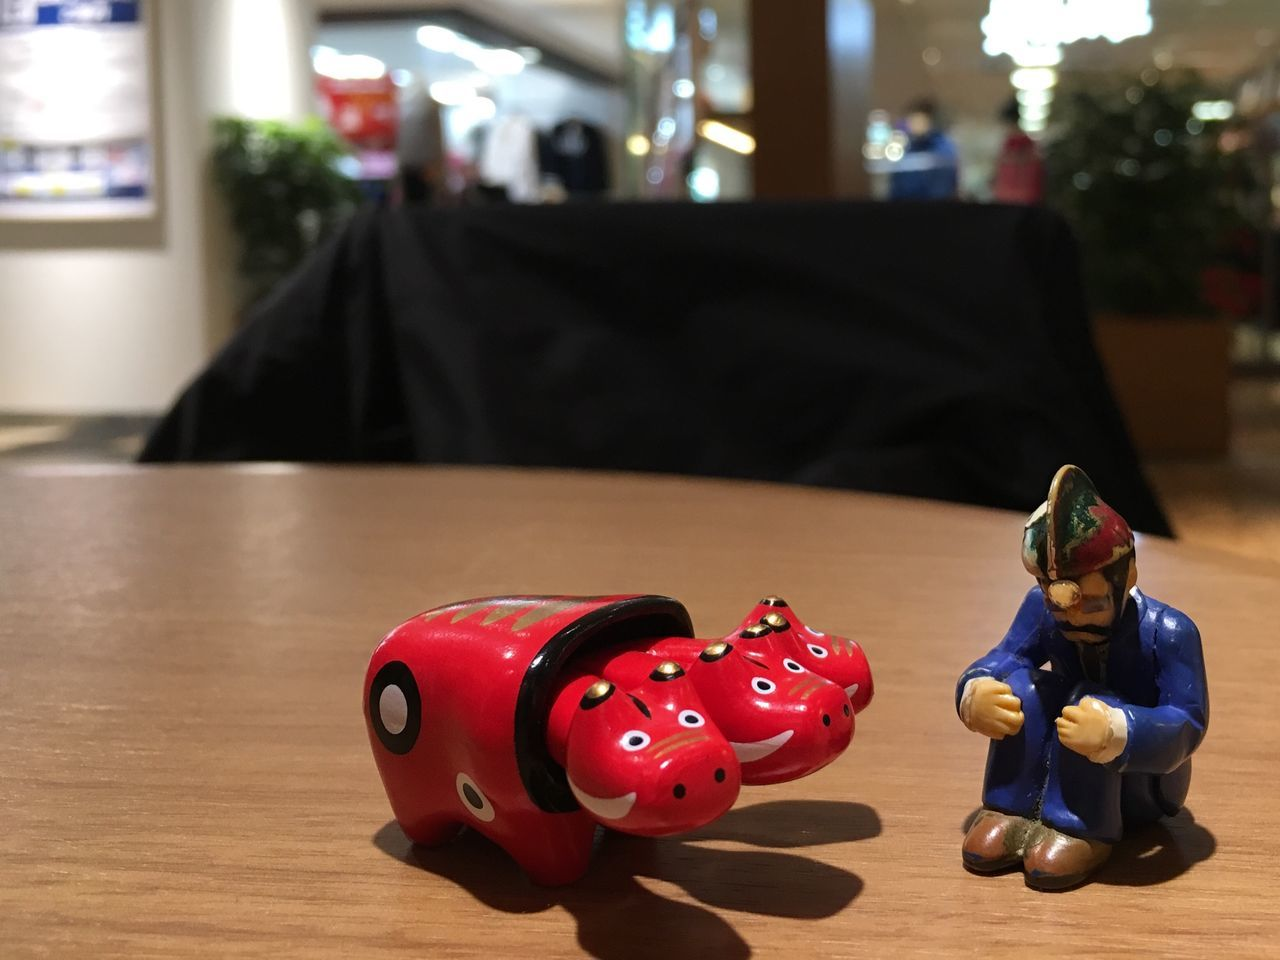 toy, focus on foreground, animal representation, figurine, childhood, indoors, piggy bank, table, no people, close-up, day